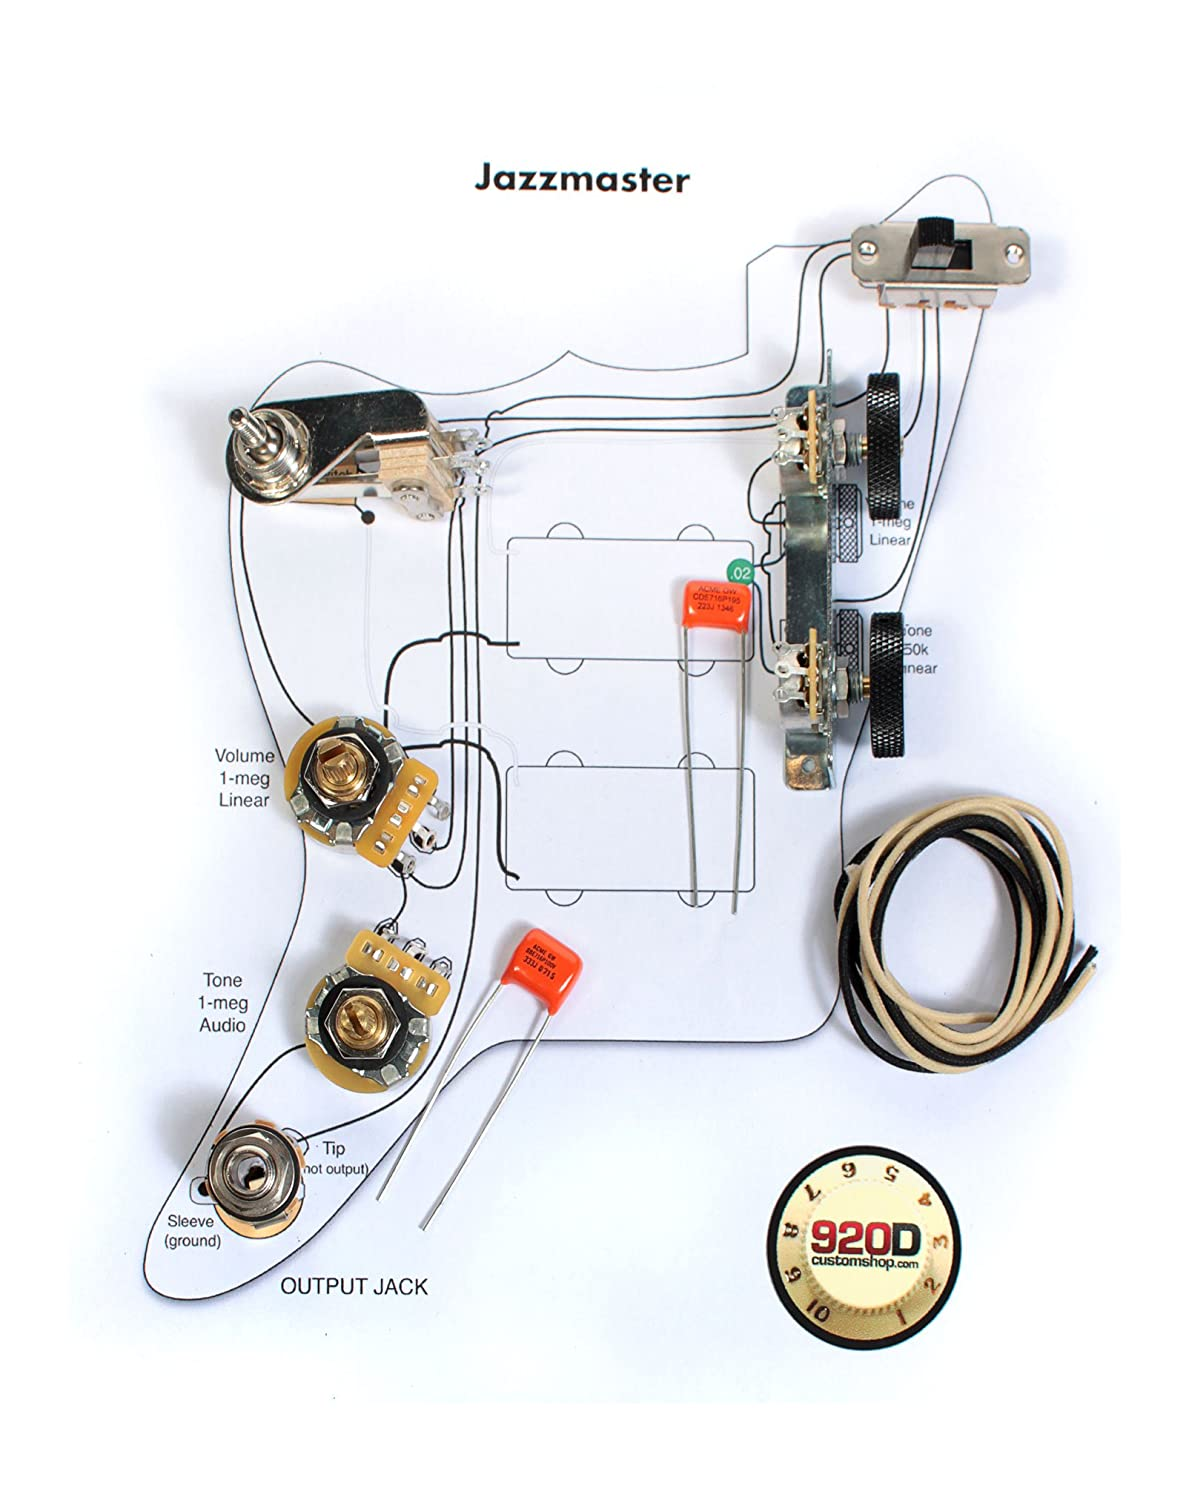 Wiring Diagram For Fender Jazzmaster Schematic Diagrams Amp Series Trusted U2022